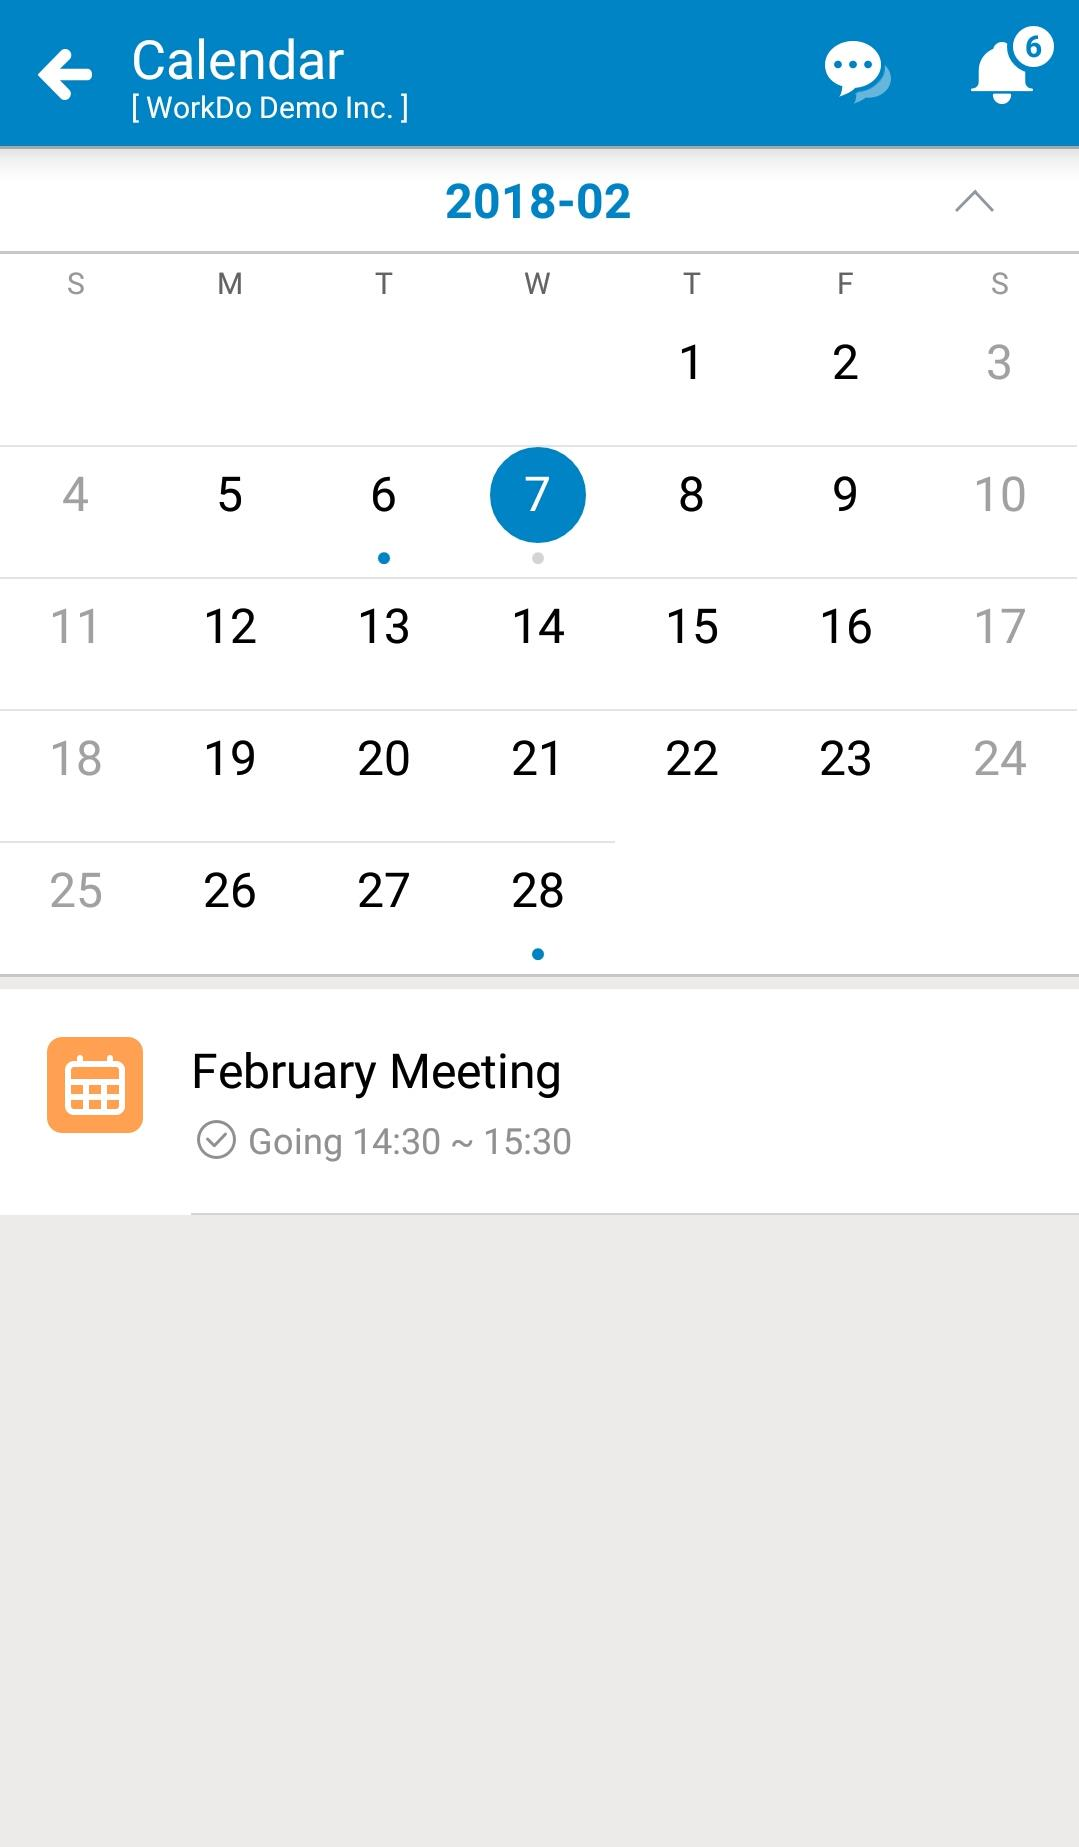 WorkDo, Dashboard, Calendar